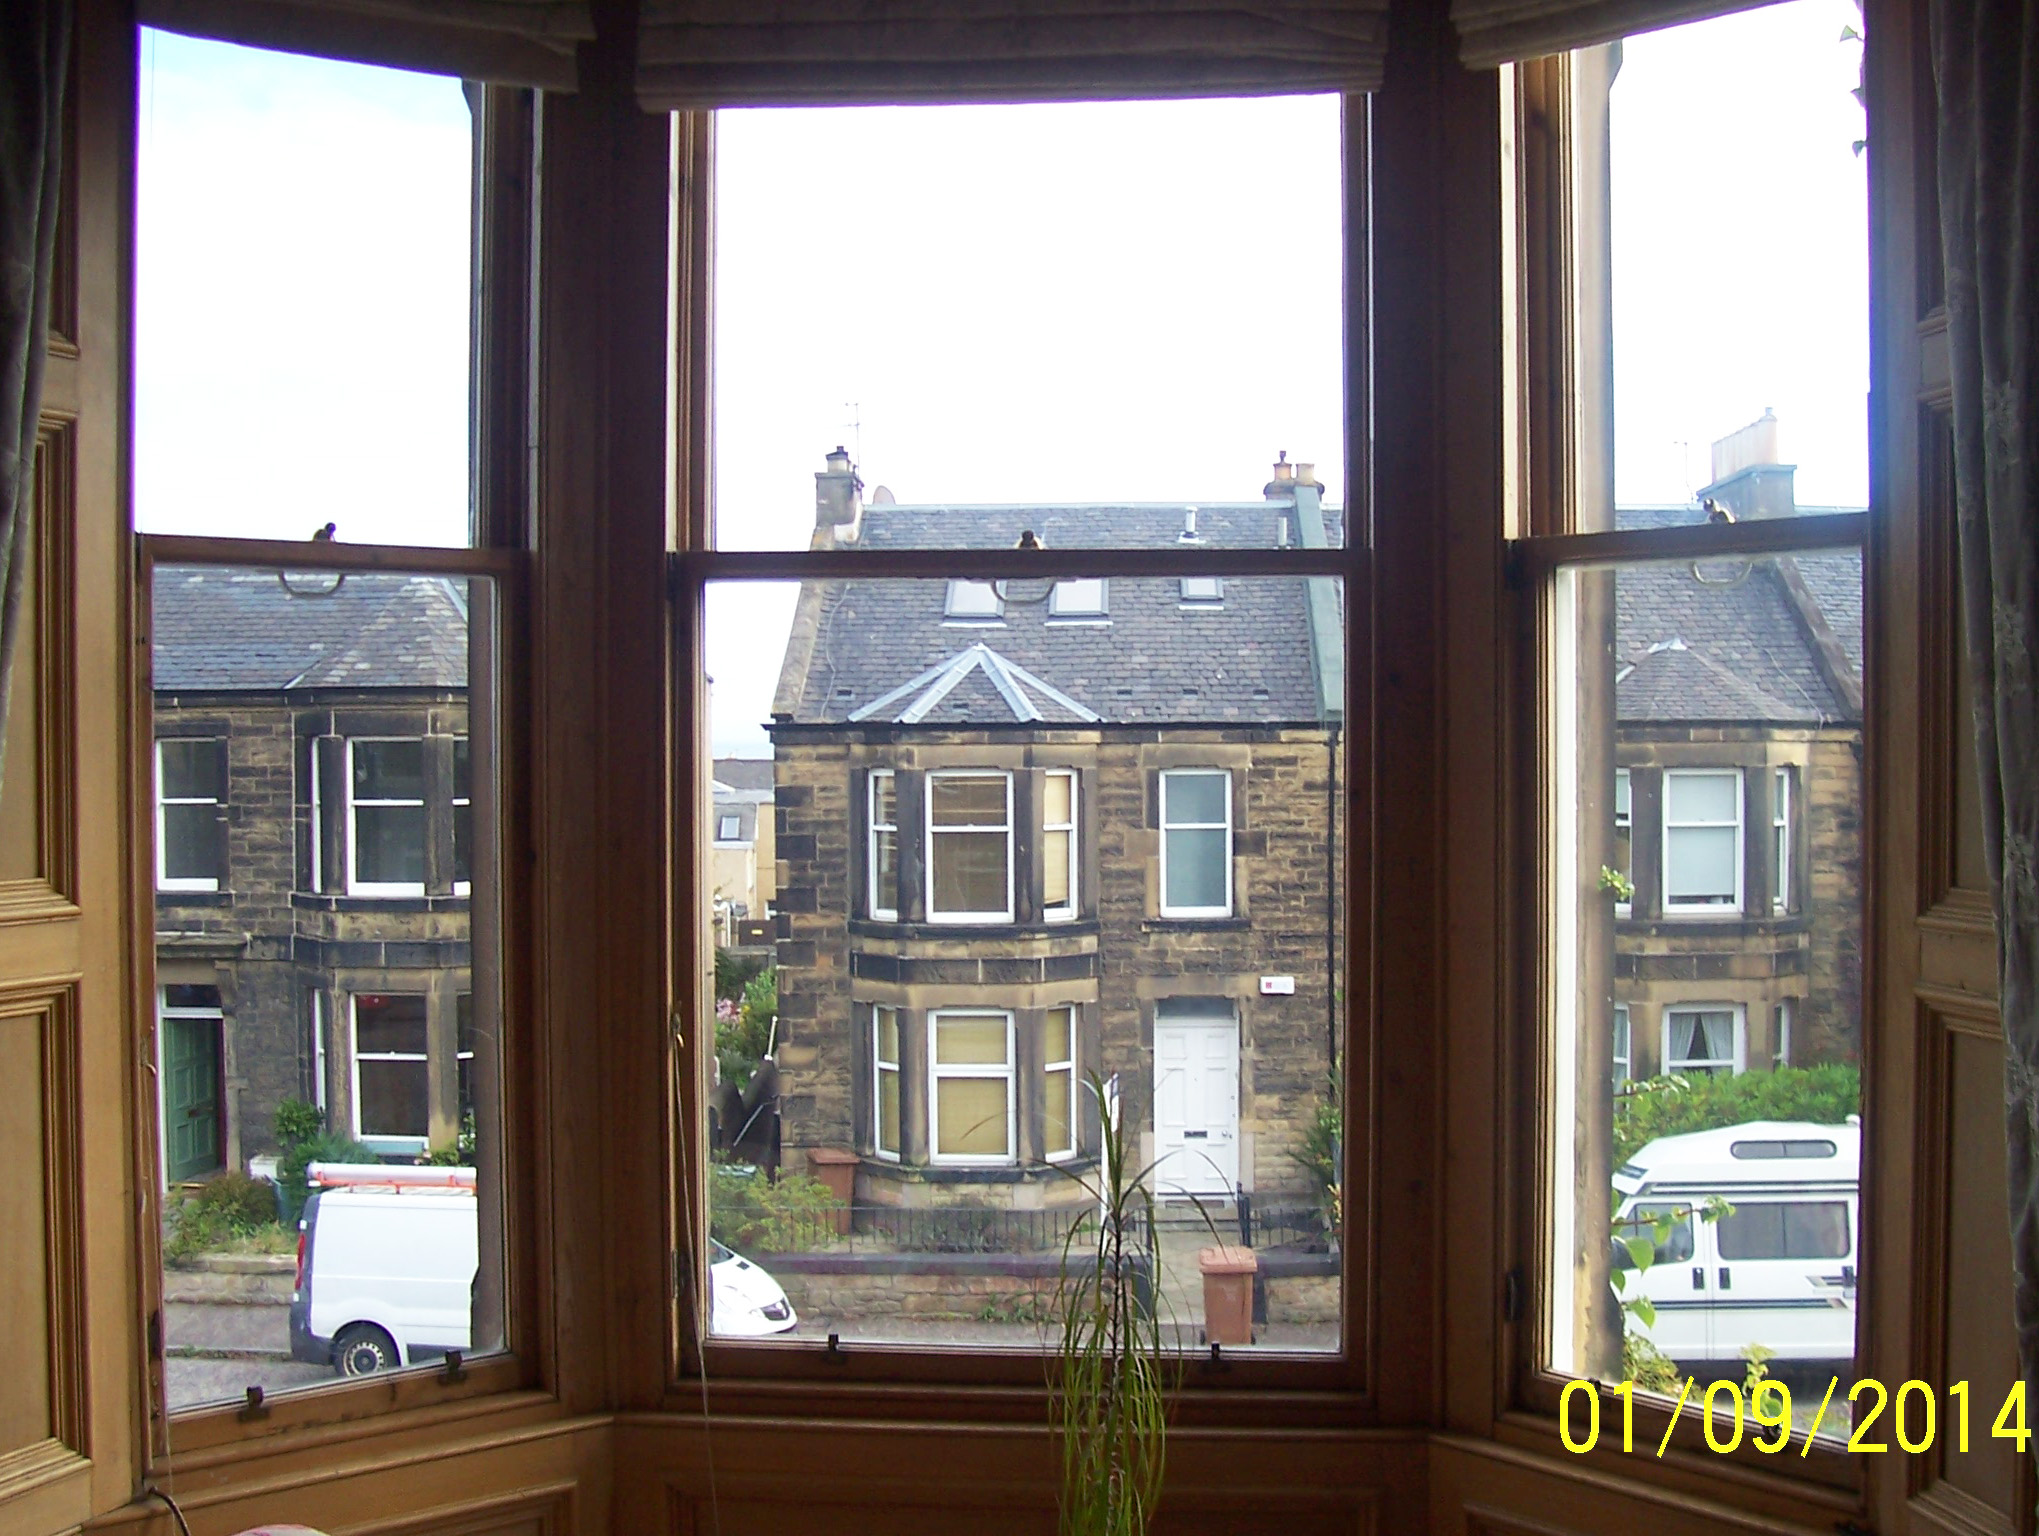 Taking the pane out of fitting double glazing part 2 for Double glaziers